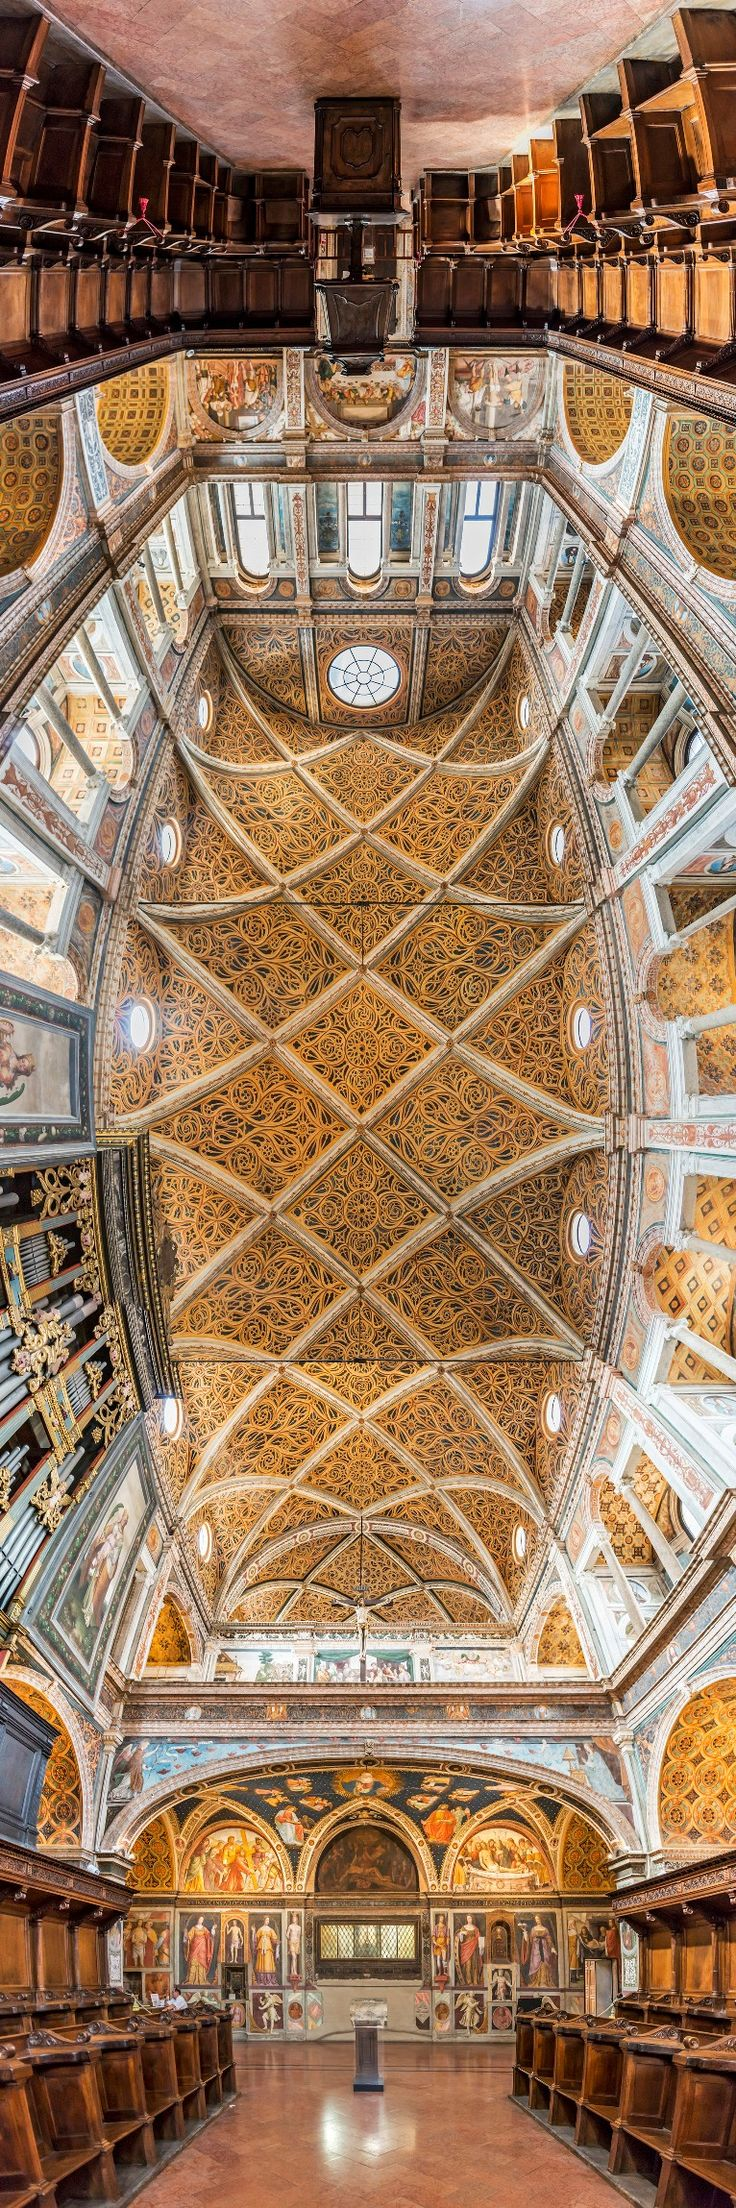 Panoramic Photos Capture The Architectural Artistry of the World's Churches